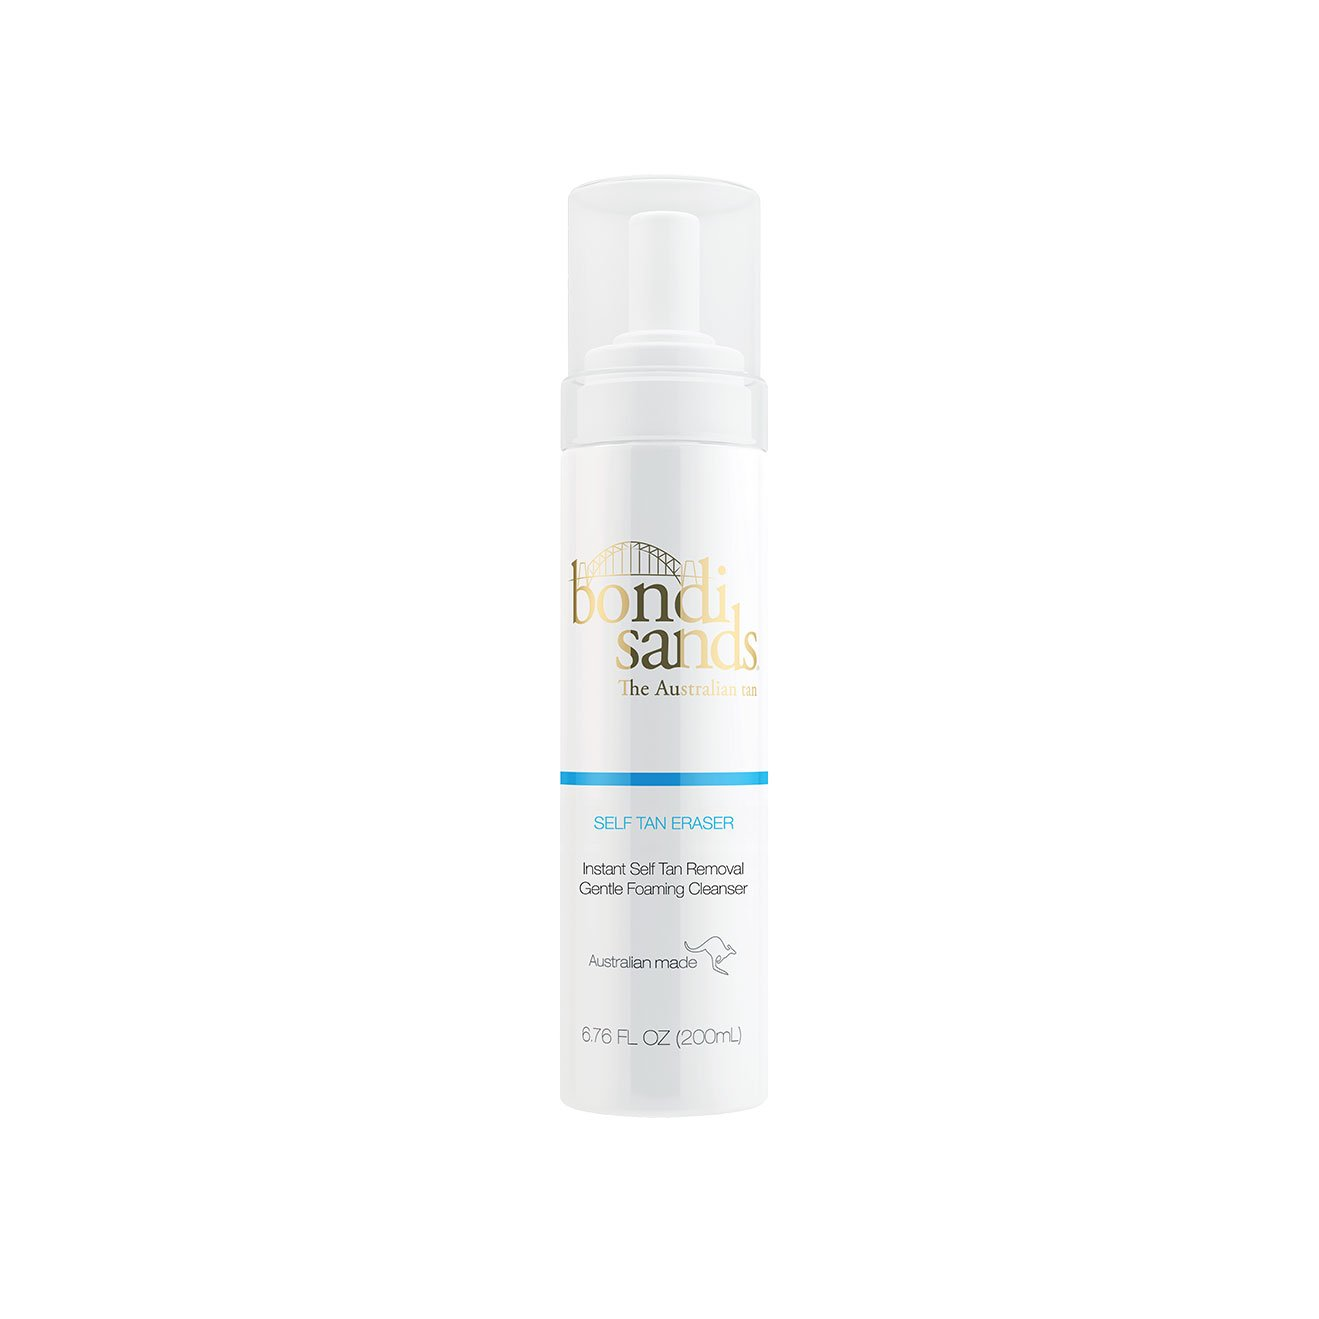 Bondi Sands Tan Eraser 200ml